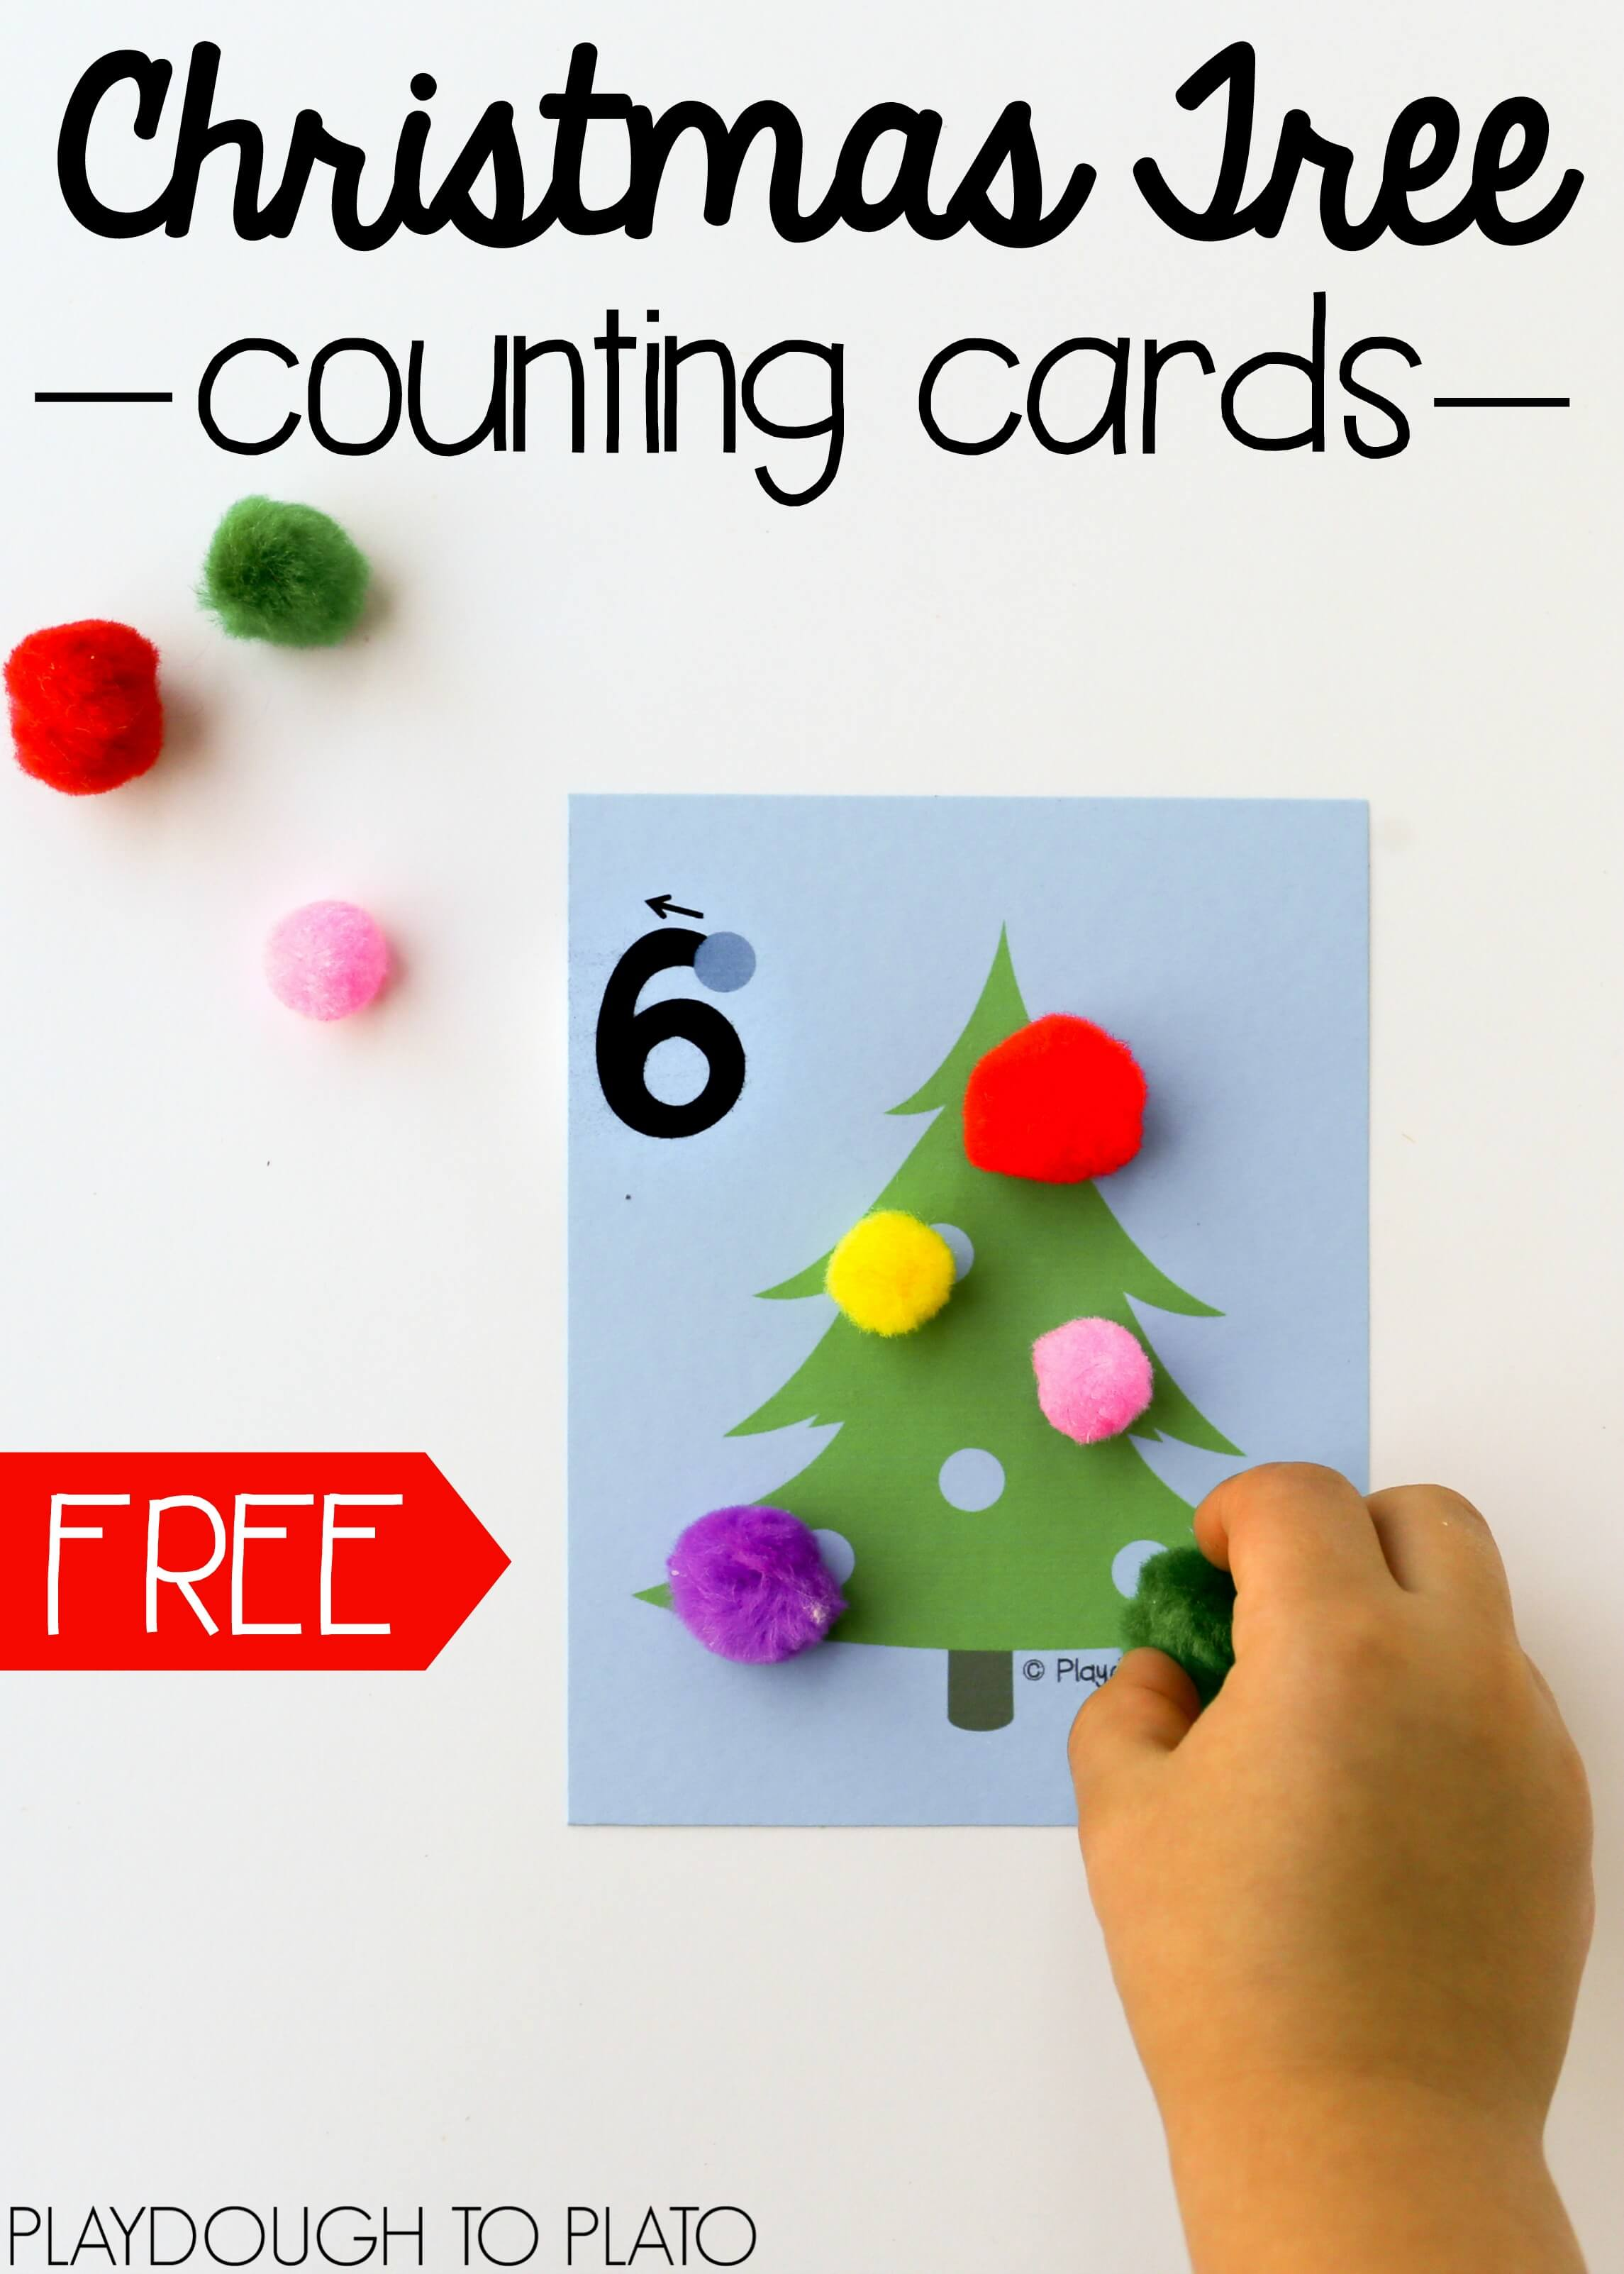 Free Christmas Tree Counting Cards